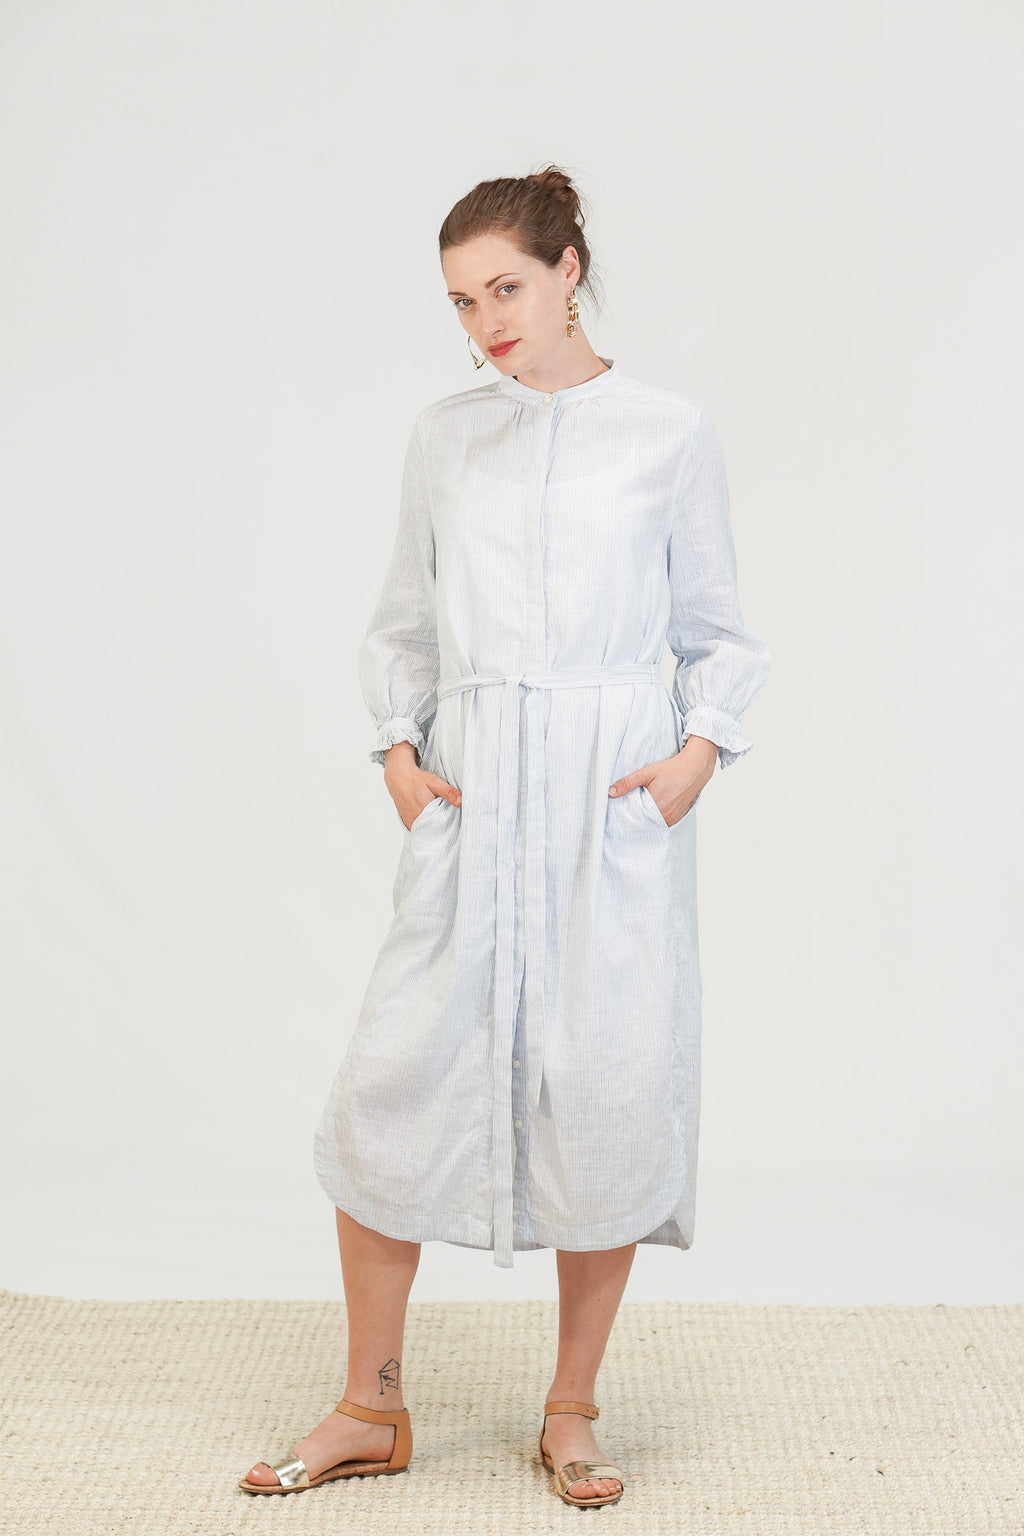 Trovata Crista Shirt Dress in Blue and White Stripes